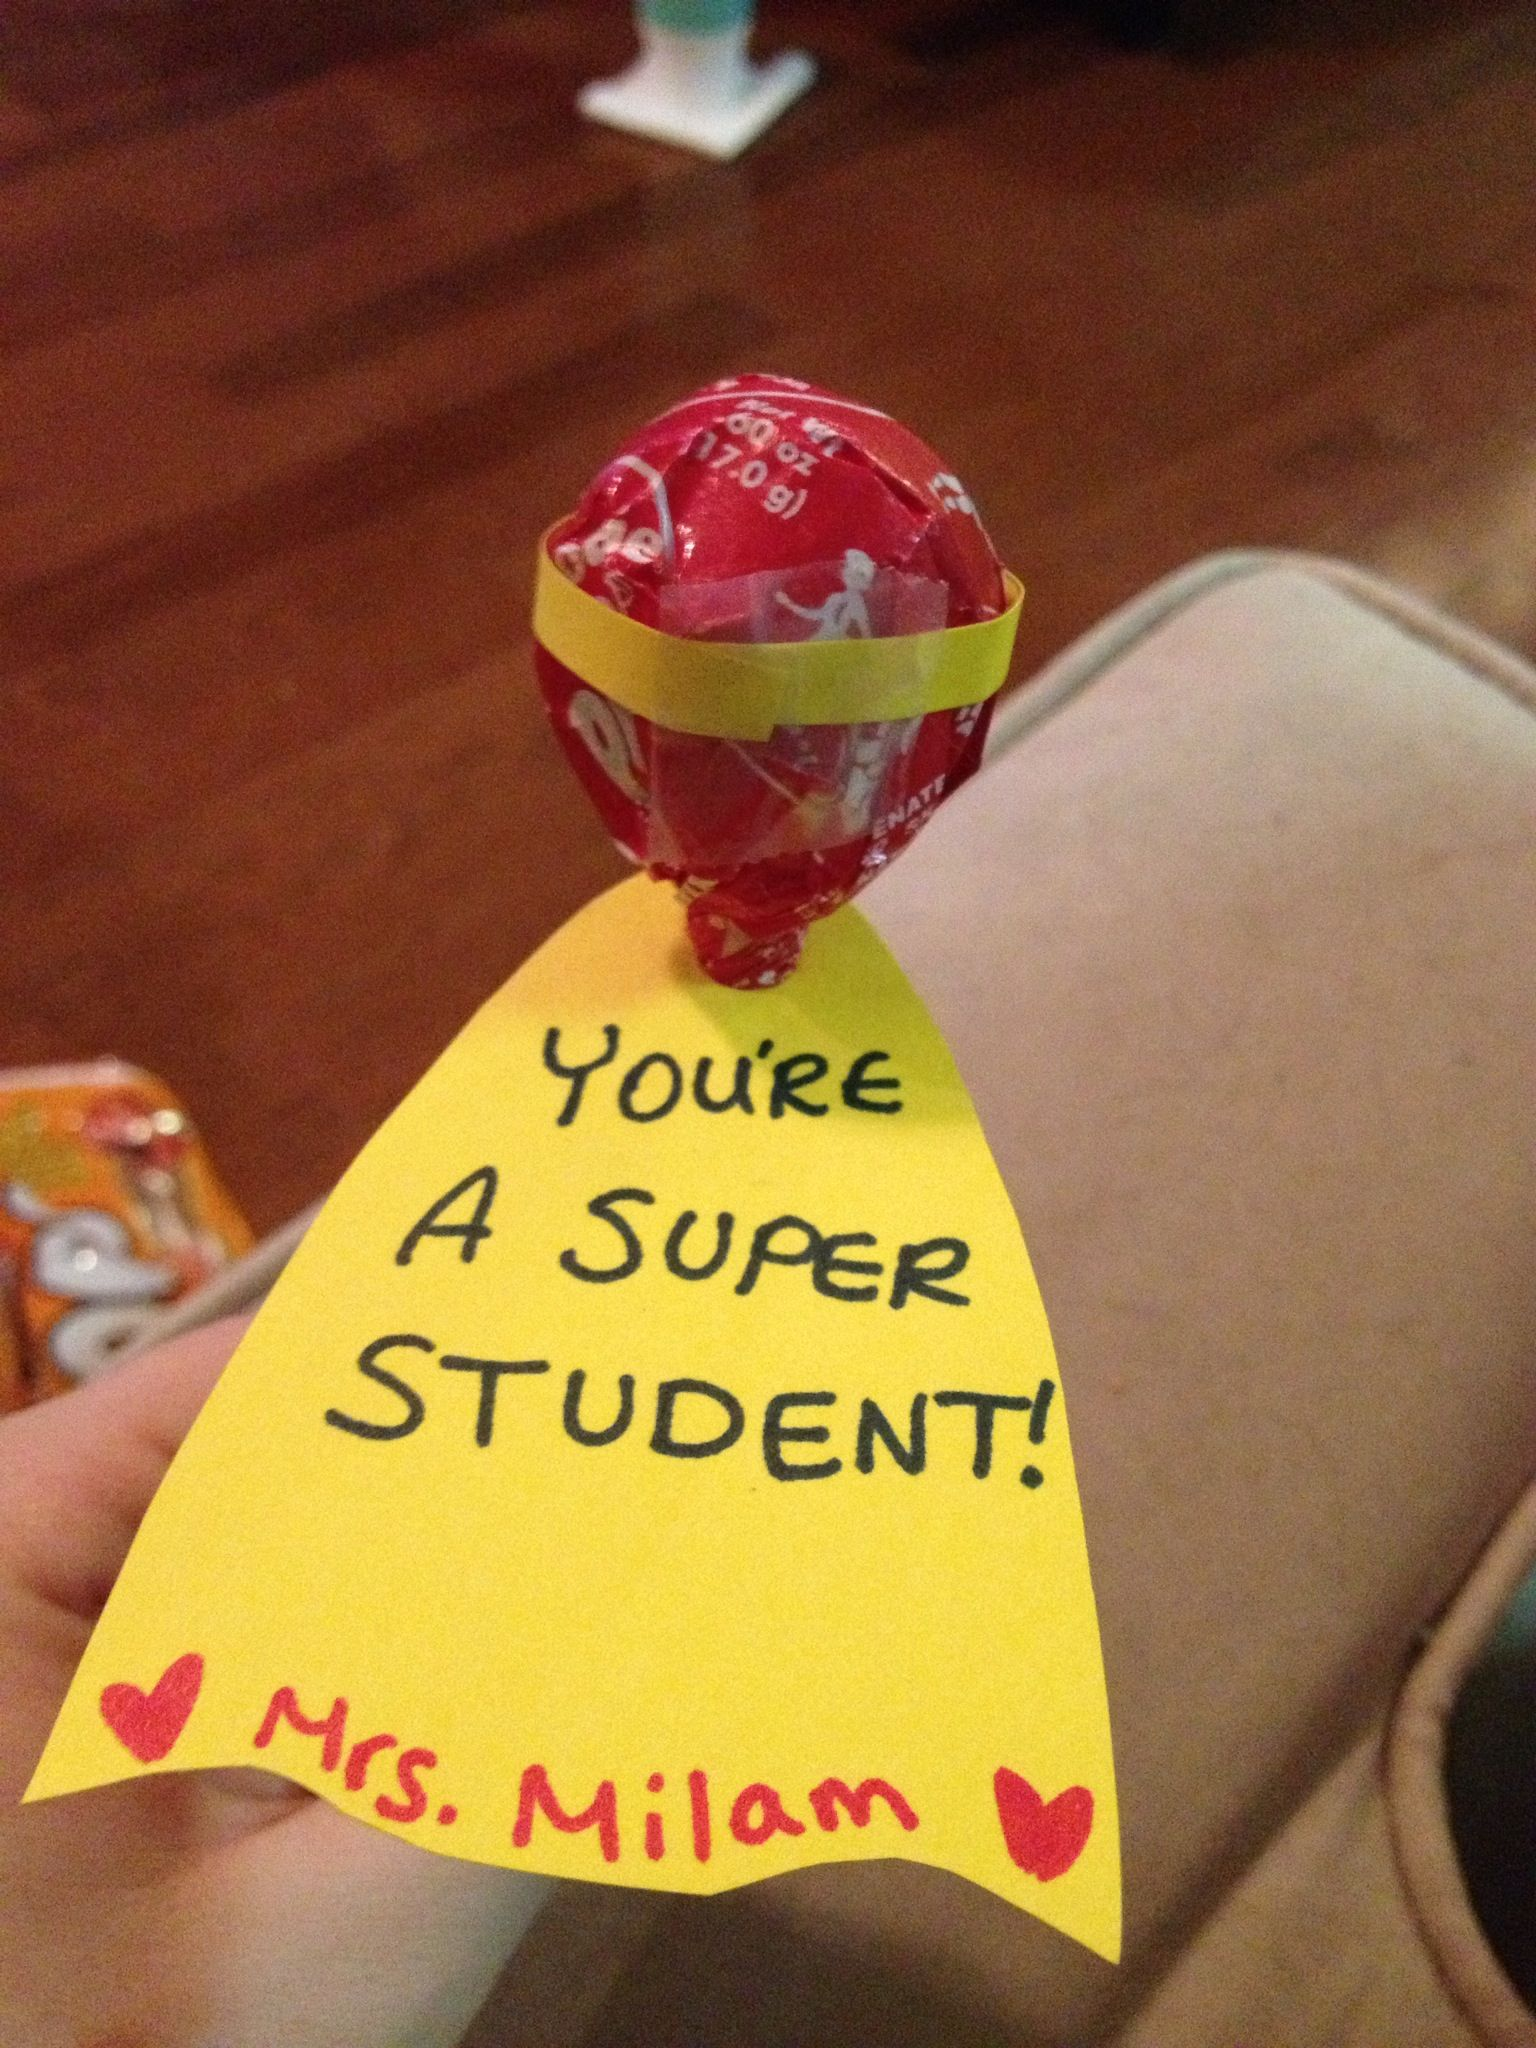 "Could change this to ""I think you're Super!"" and make classroom friend Valentine's out of the idea. Love options that are unisex and not at all suggestive.."